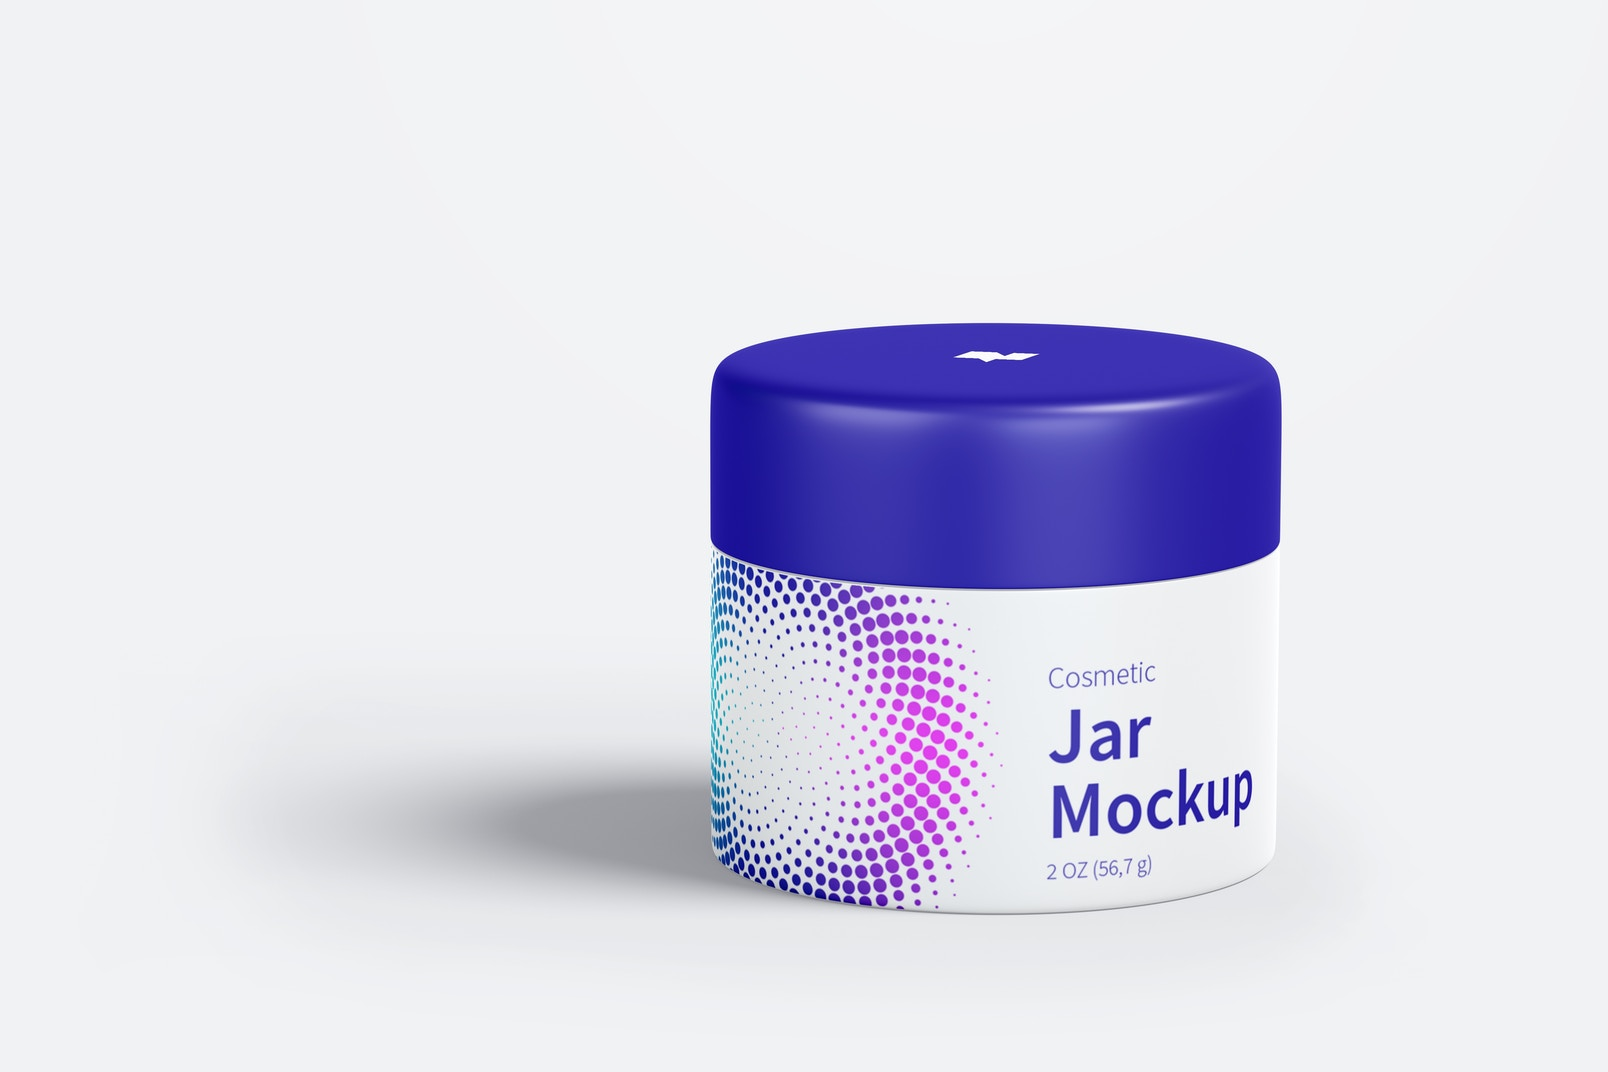 Cosmetic Jar Mockup, Front View 02